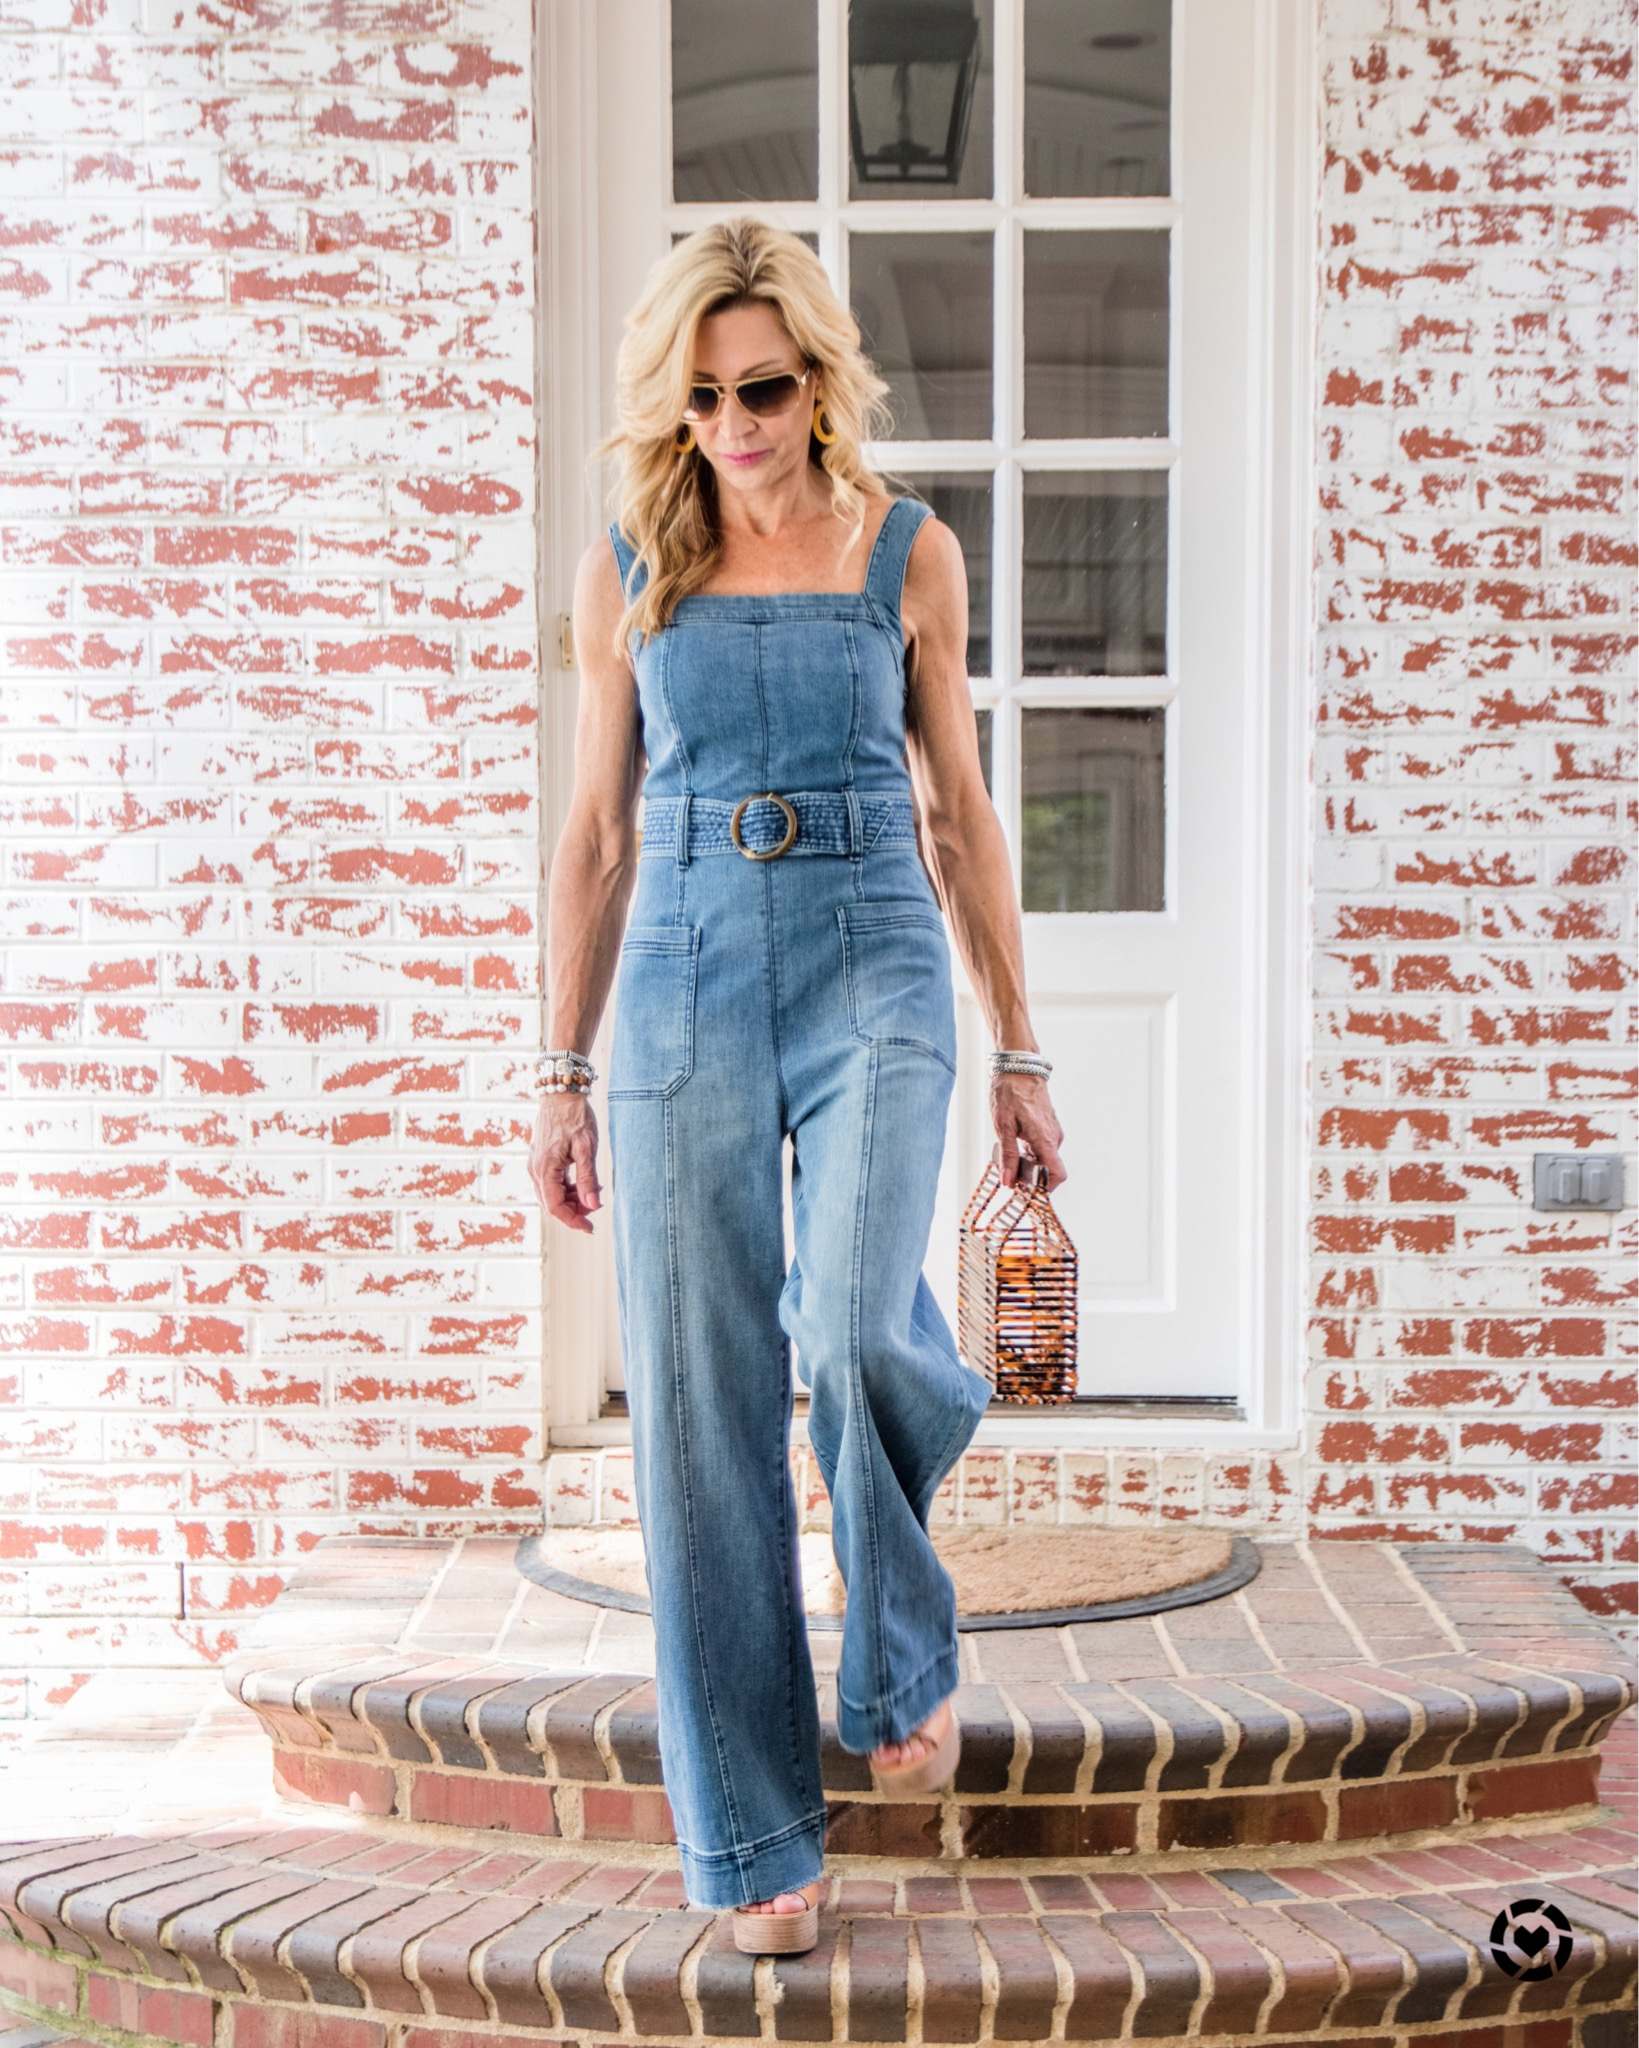 Anthropologie Denim Jumpsuit - Crazy Blonde Life